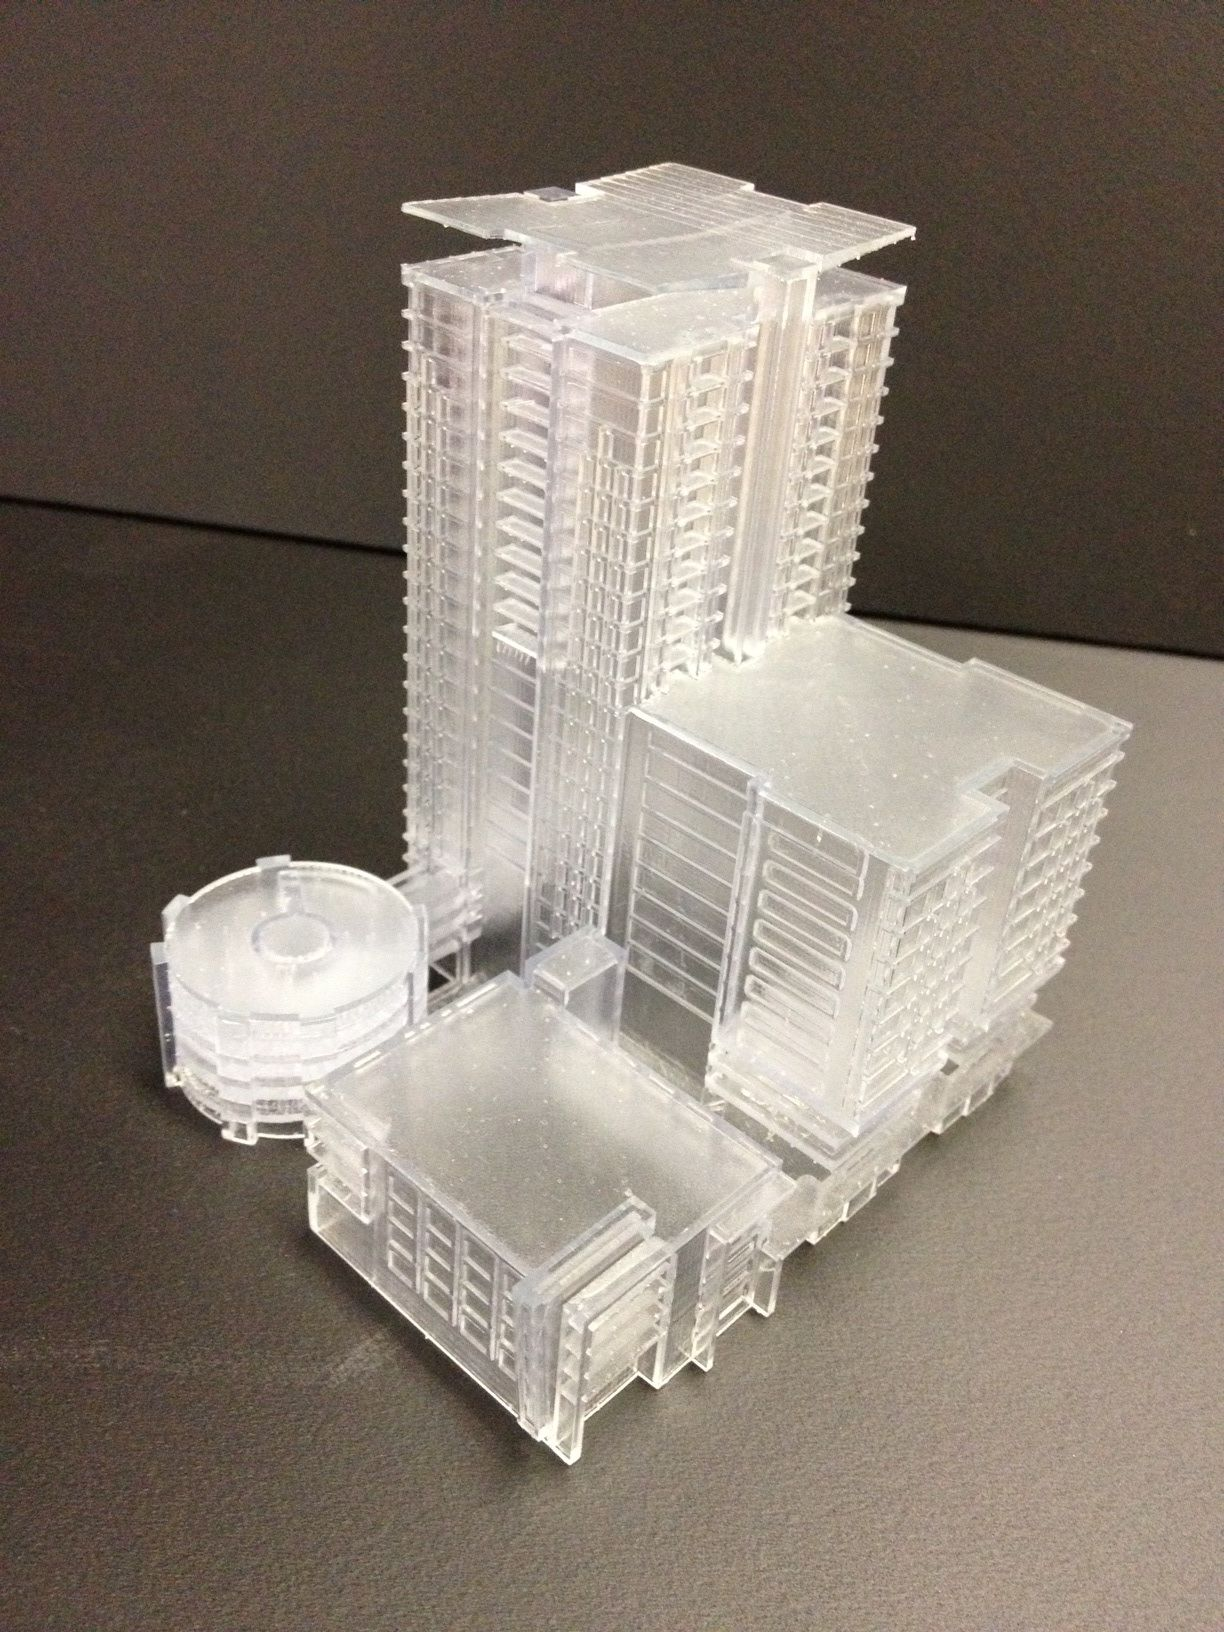 3D printing in clear resin 3d printing, Architecture